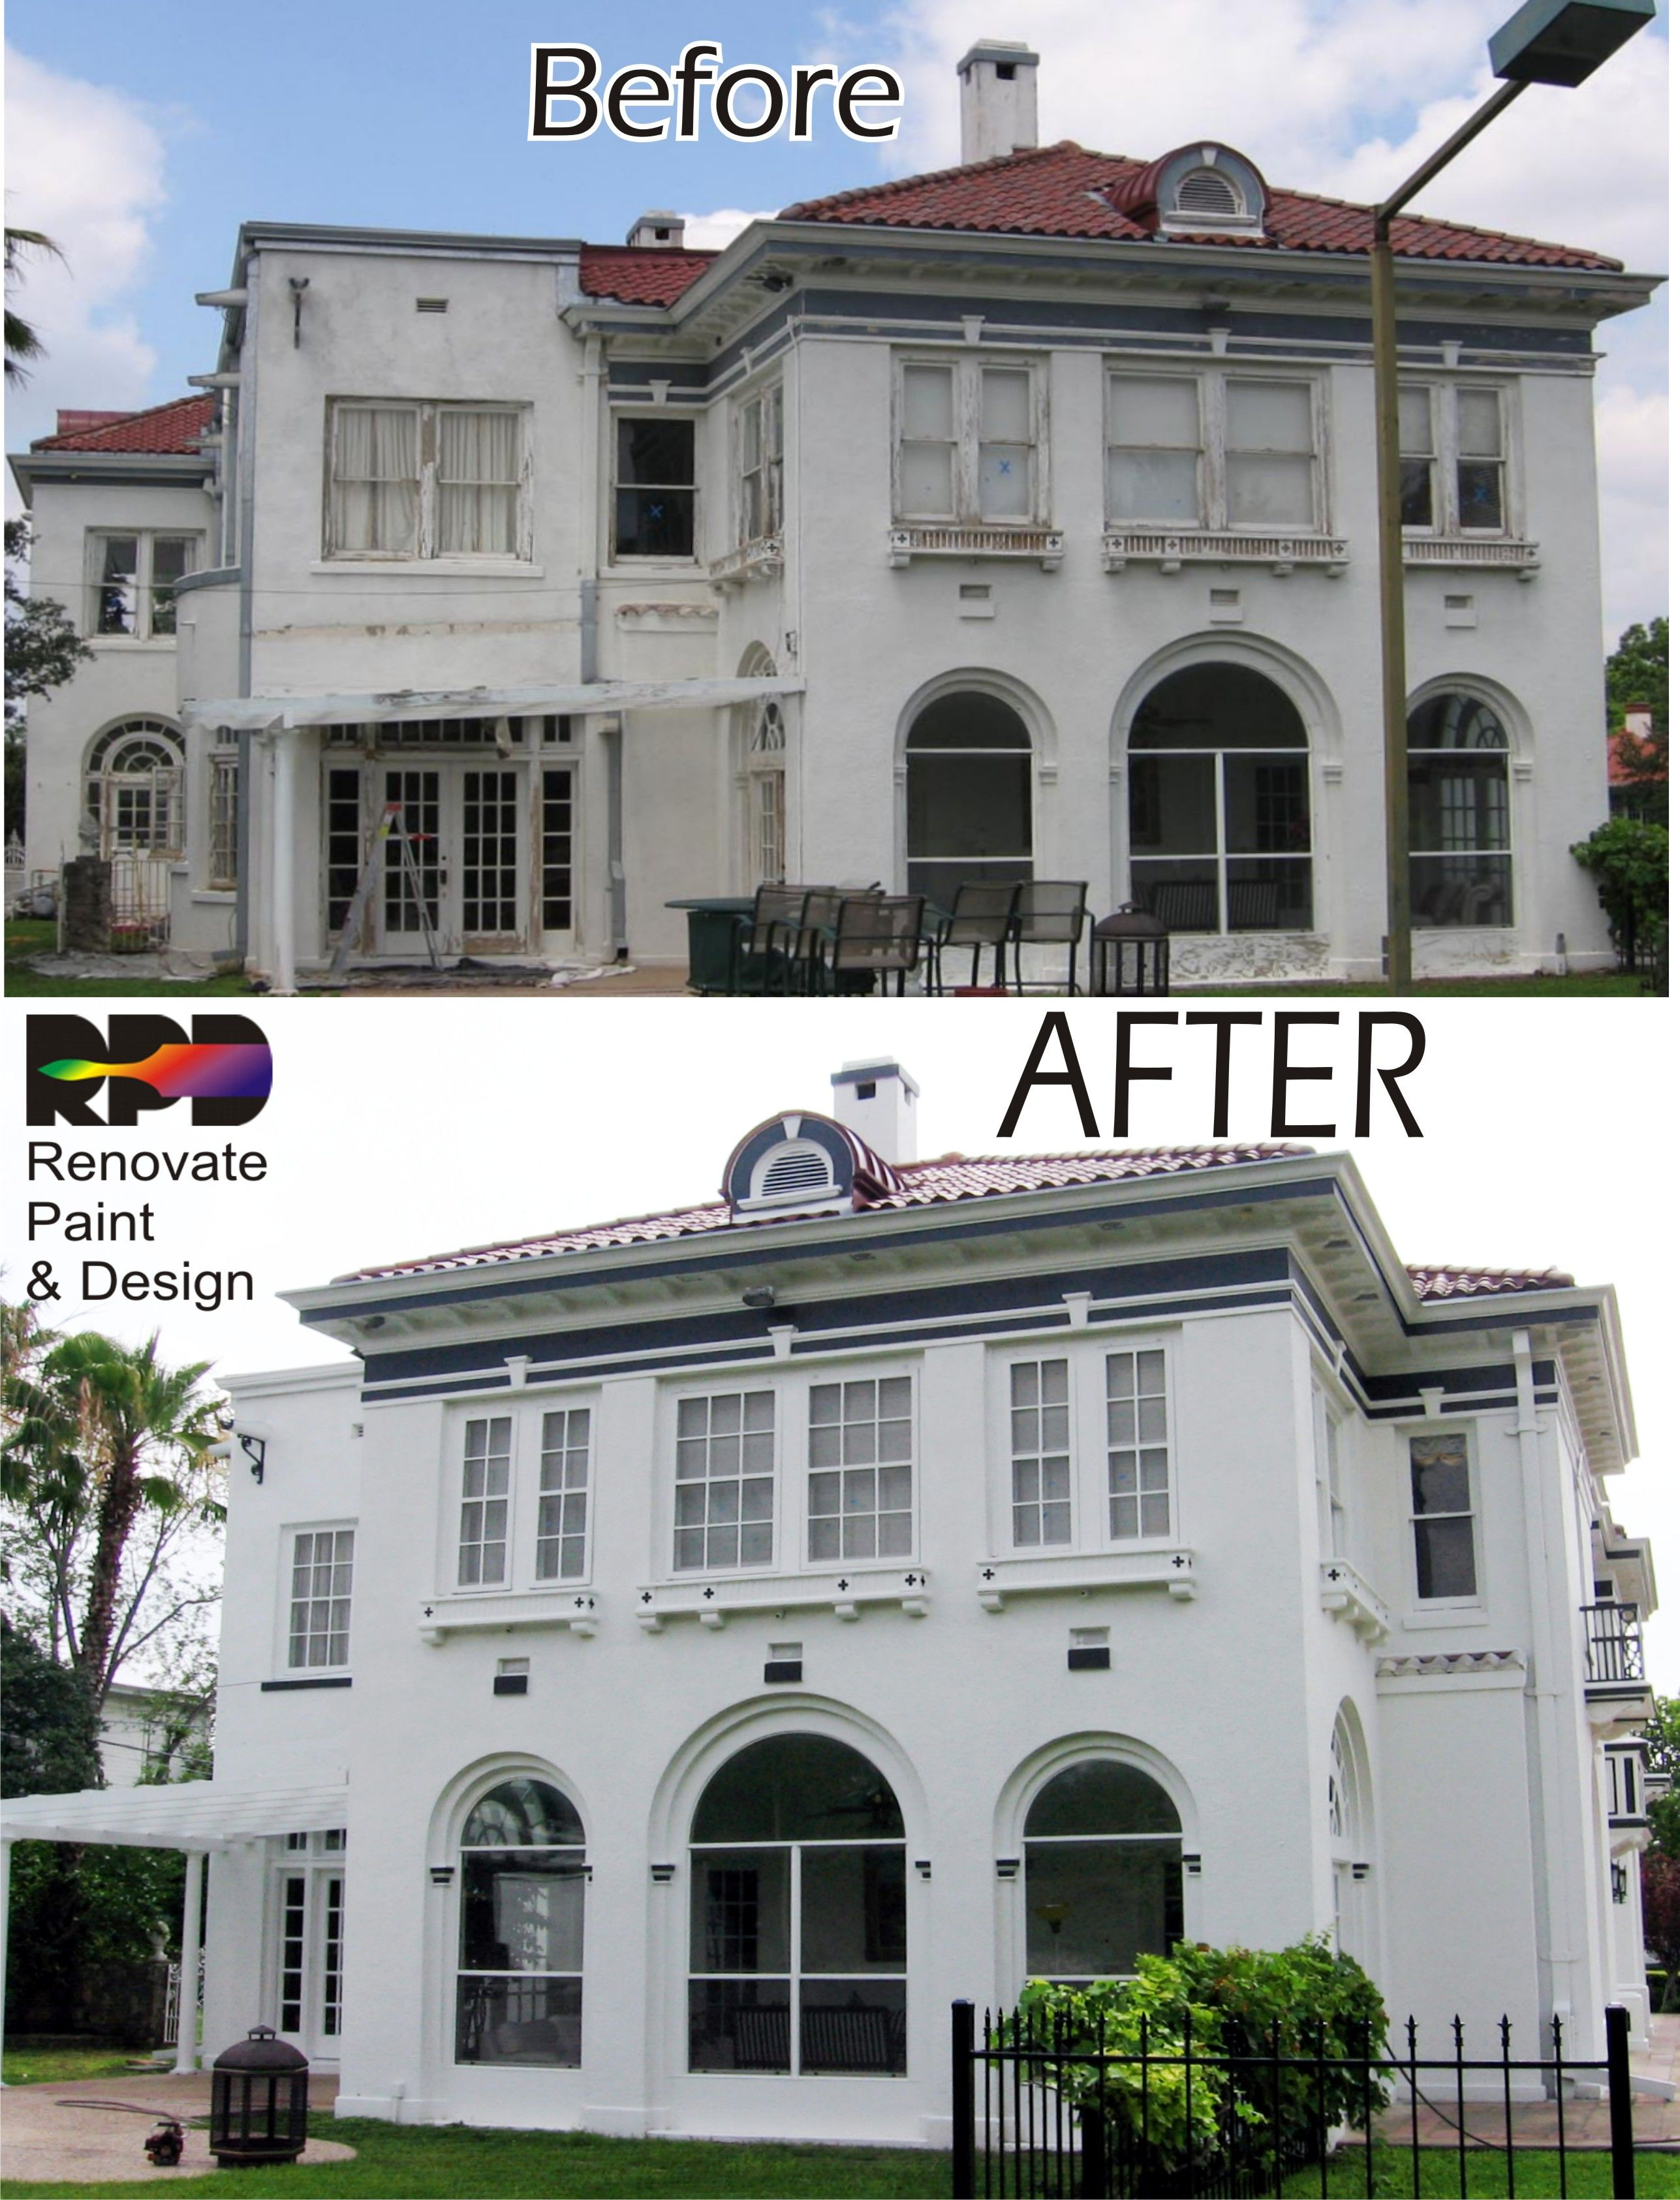 Another View Of The White Stucco Home Demonstrating The Repairs